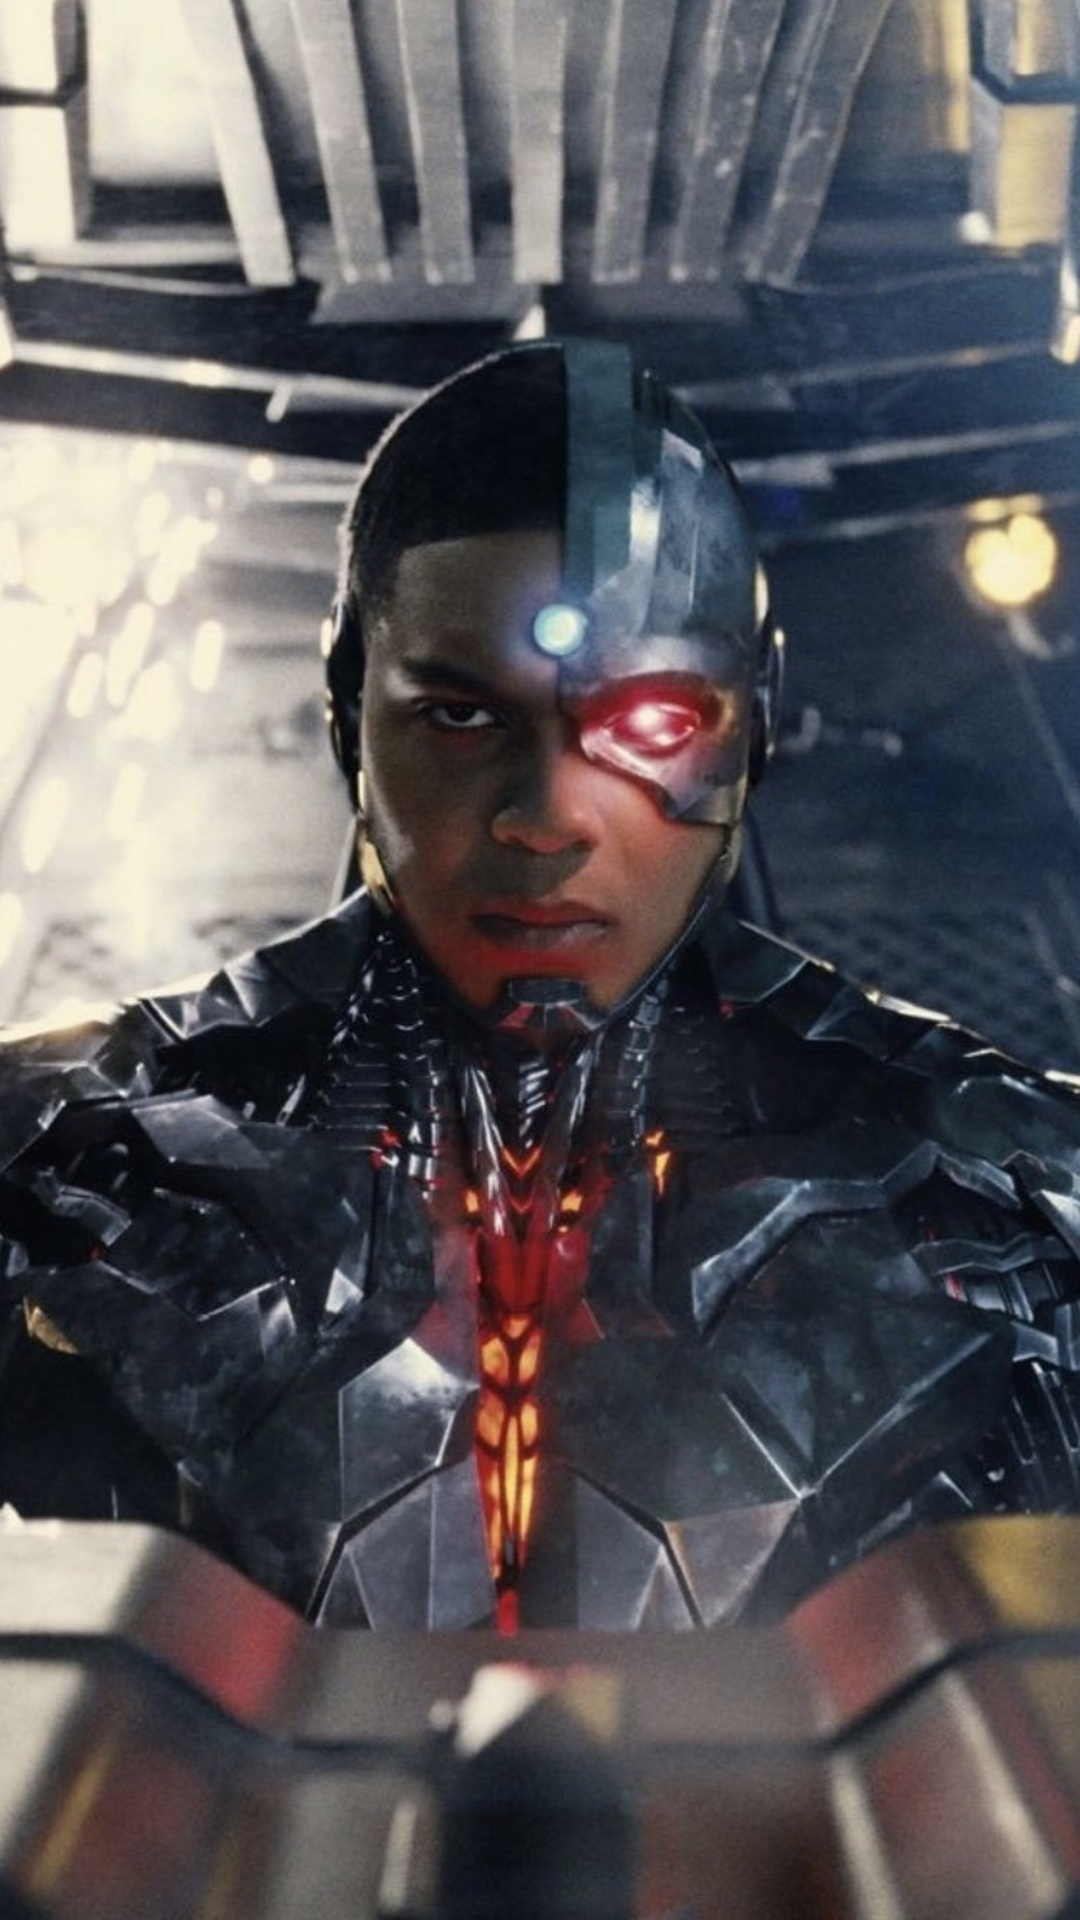 1080x1920 Cyborg Justice League Hd Iphone 76s6 Plus Pixel Xl One